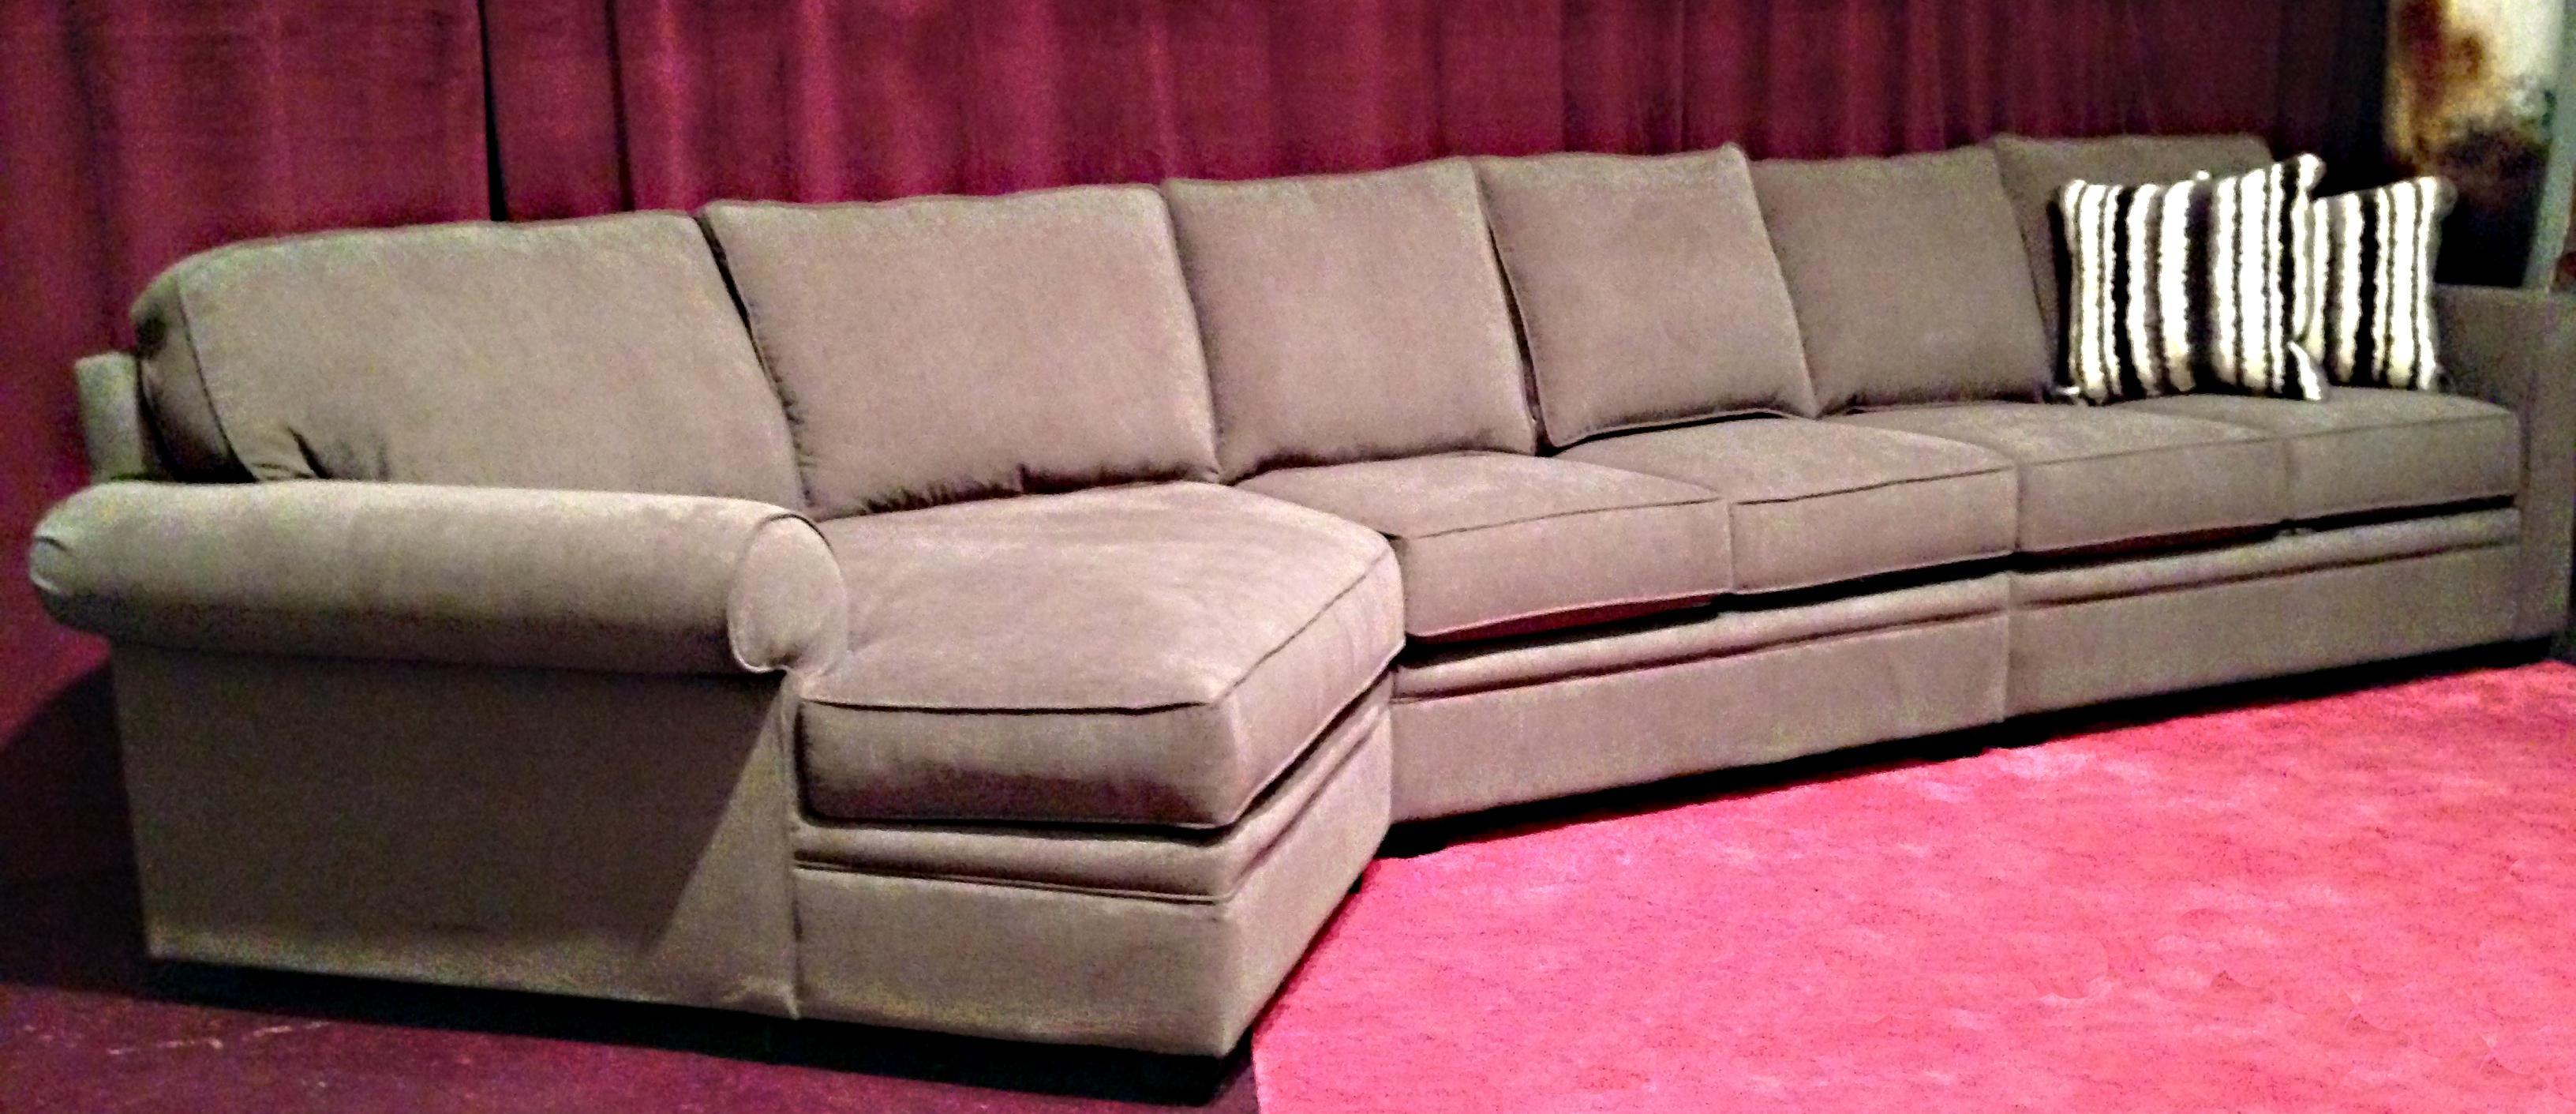 Sofas Center : Cu Left Cuddler Sectional Sofa Bassett Home Throughout Bassett Cuddler Sectional (Image 11 of 15)